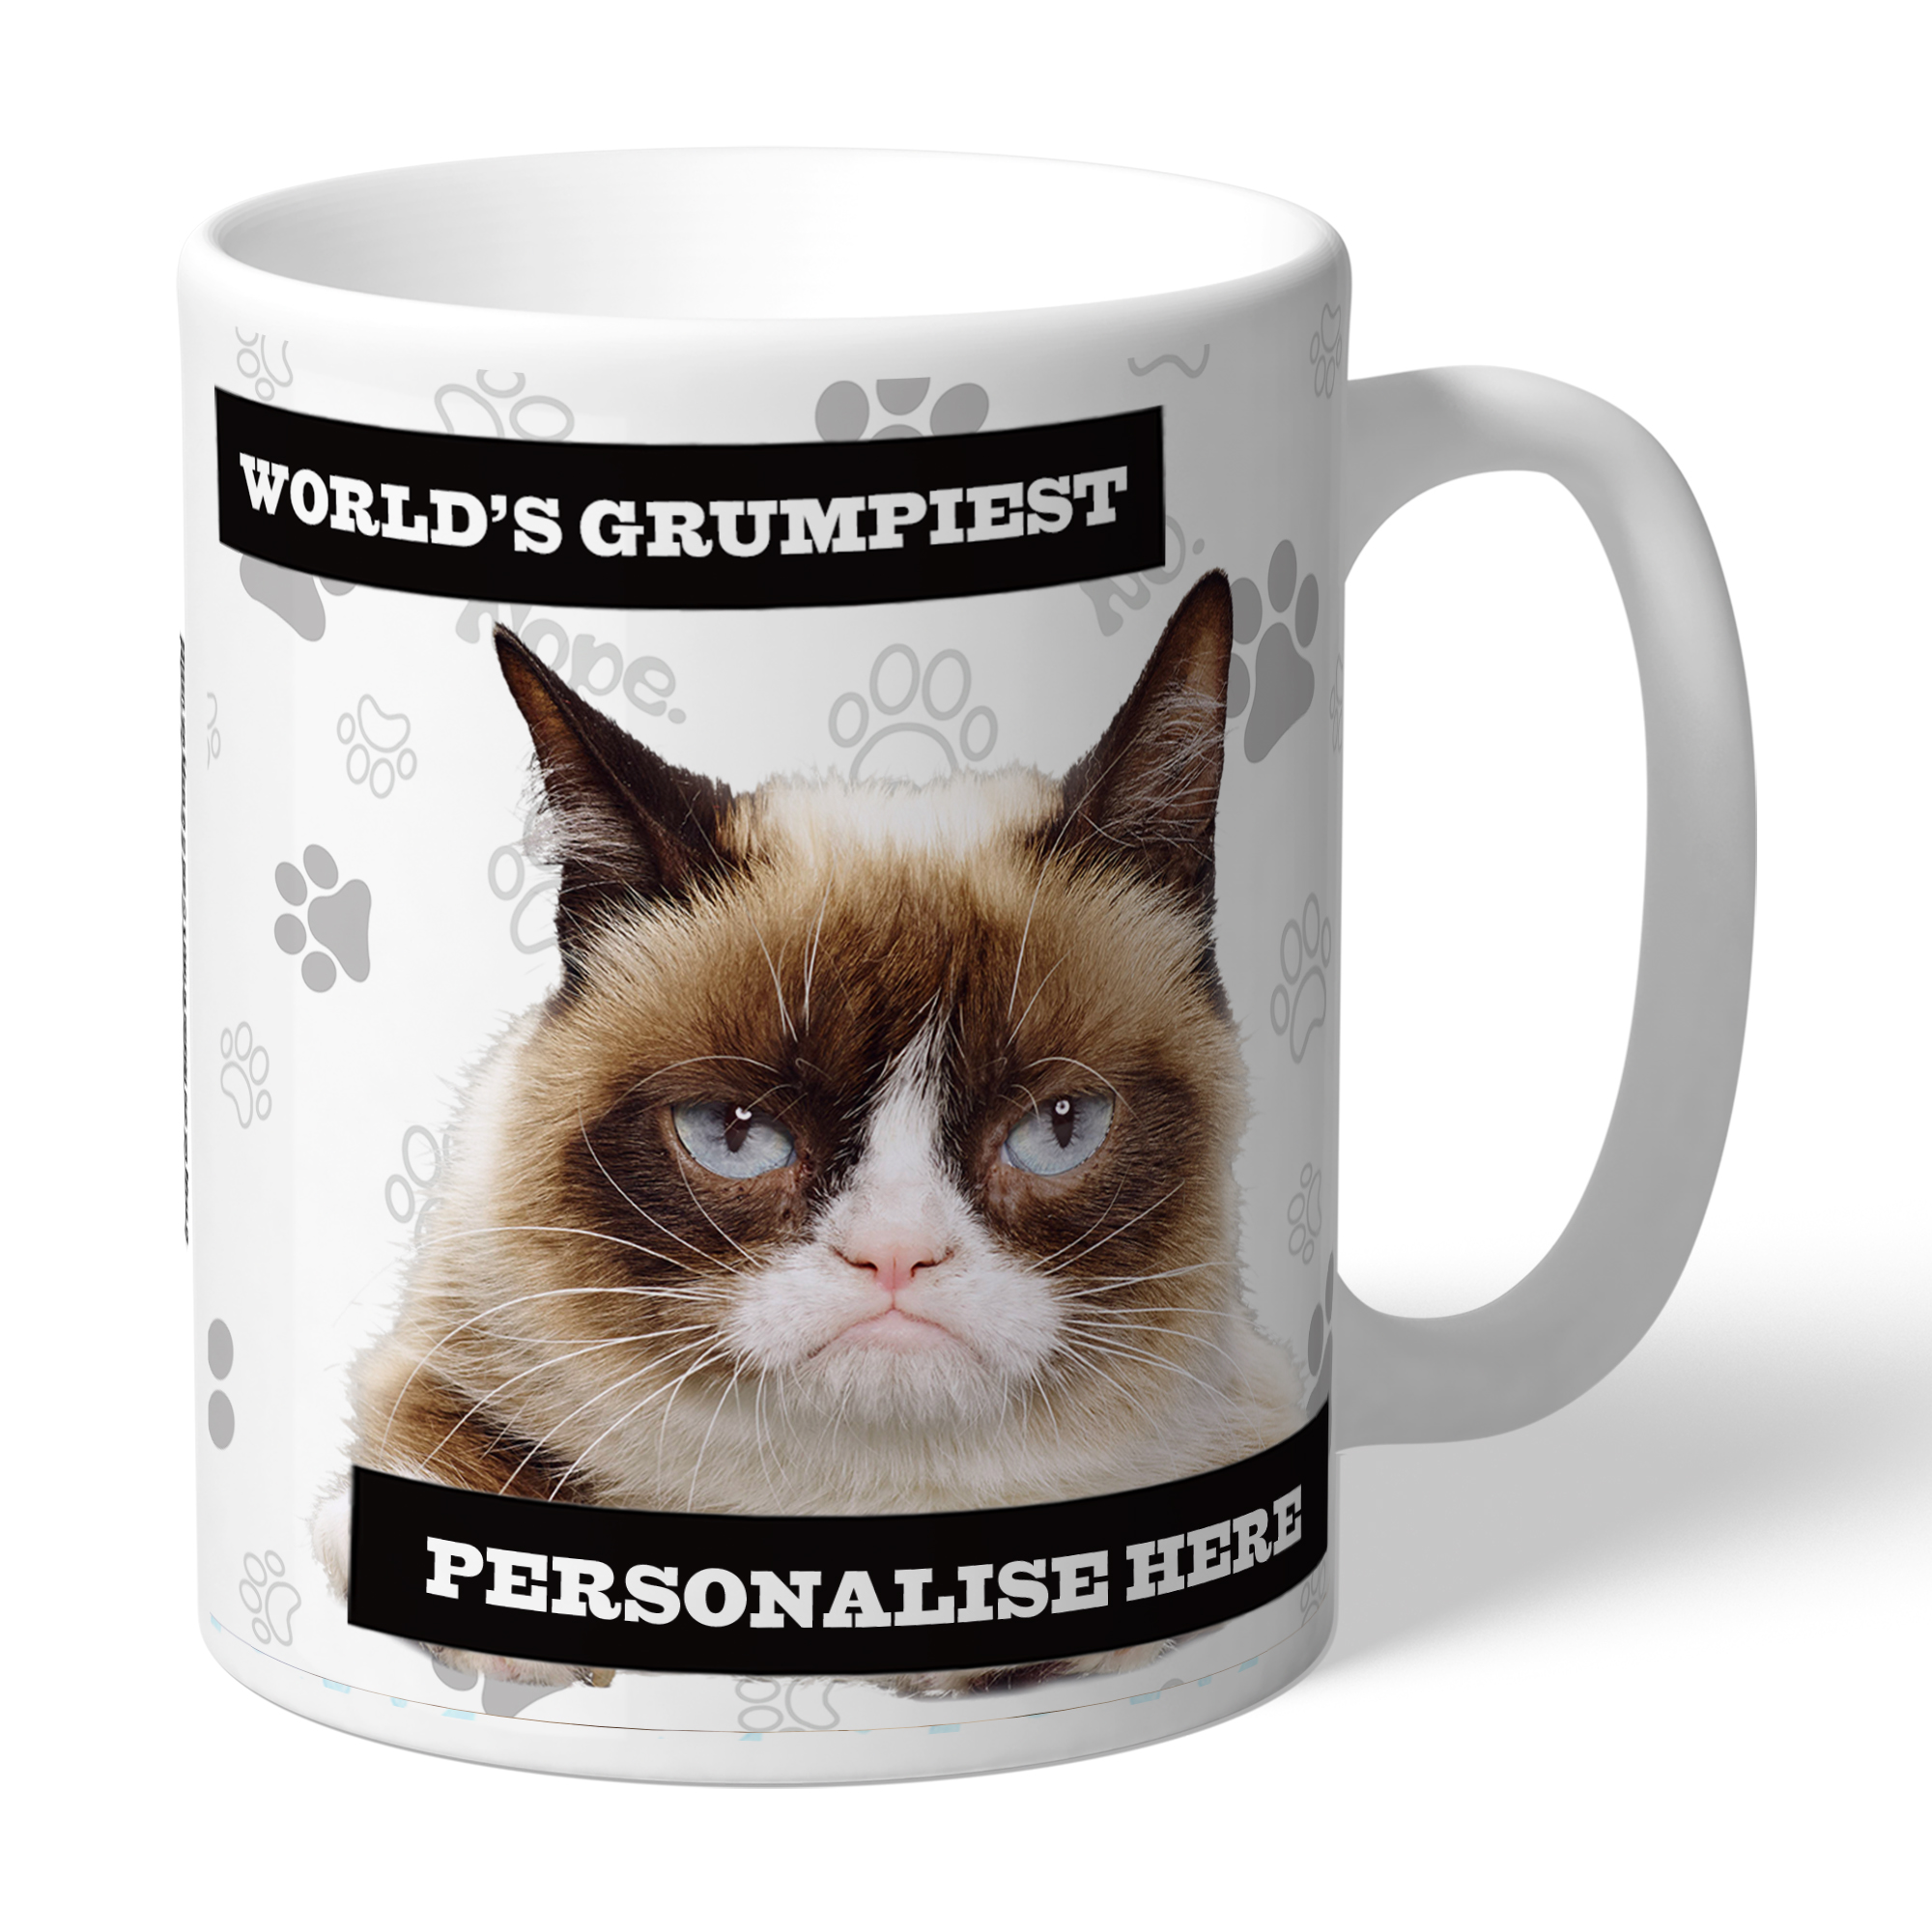 Grumpy Cat - Worlds Grumpiest Mug